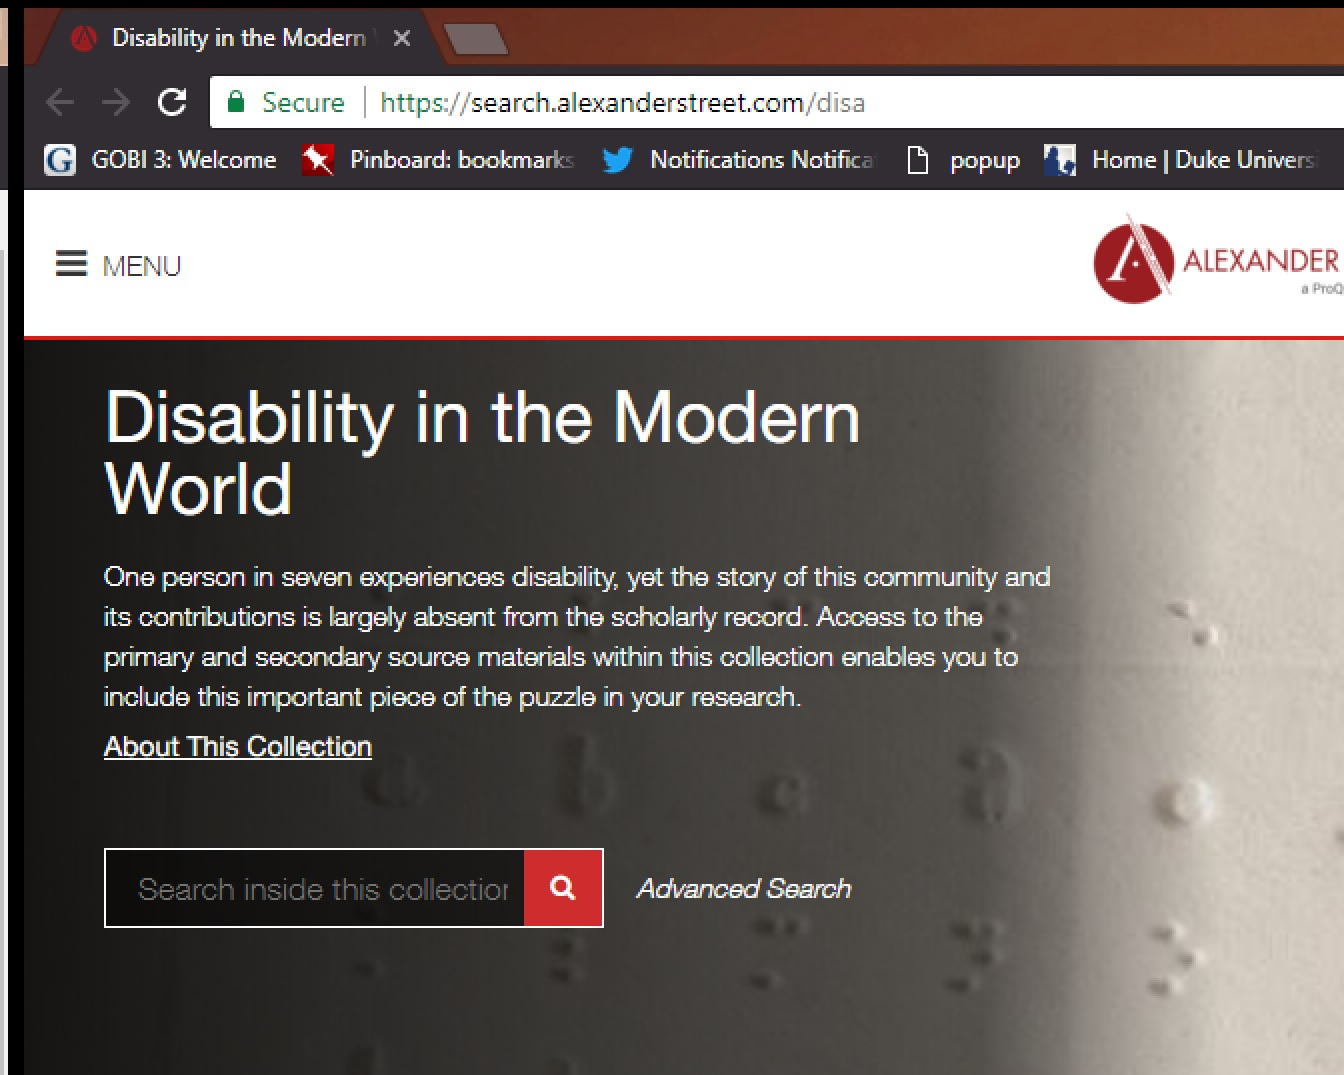 Disability in the Modern World